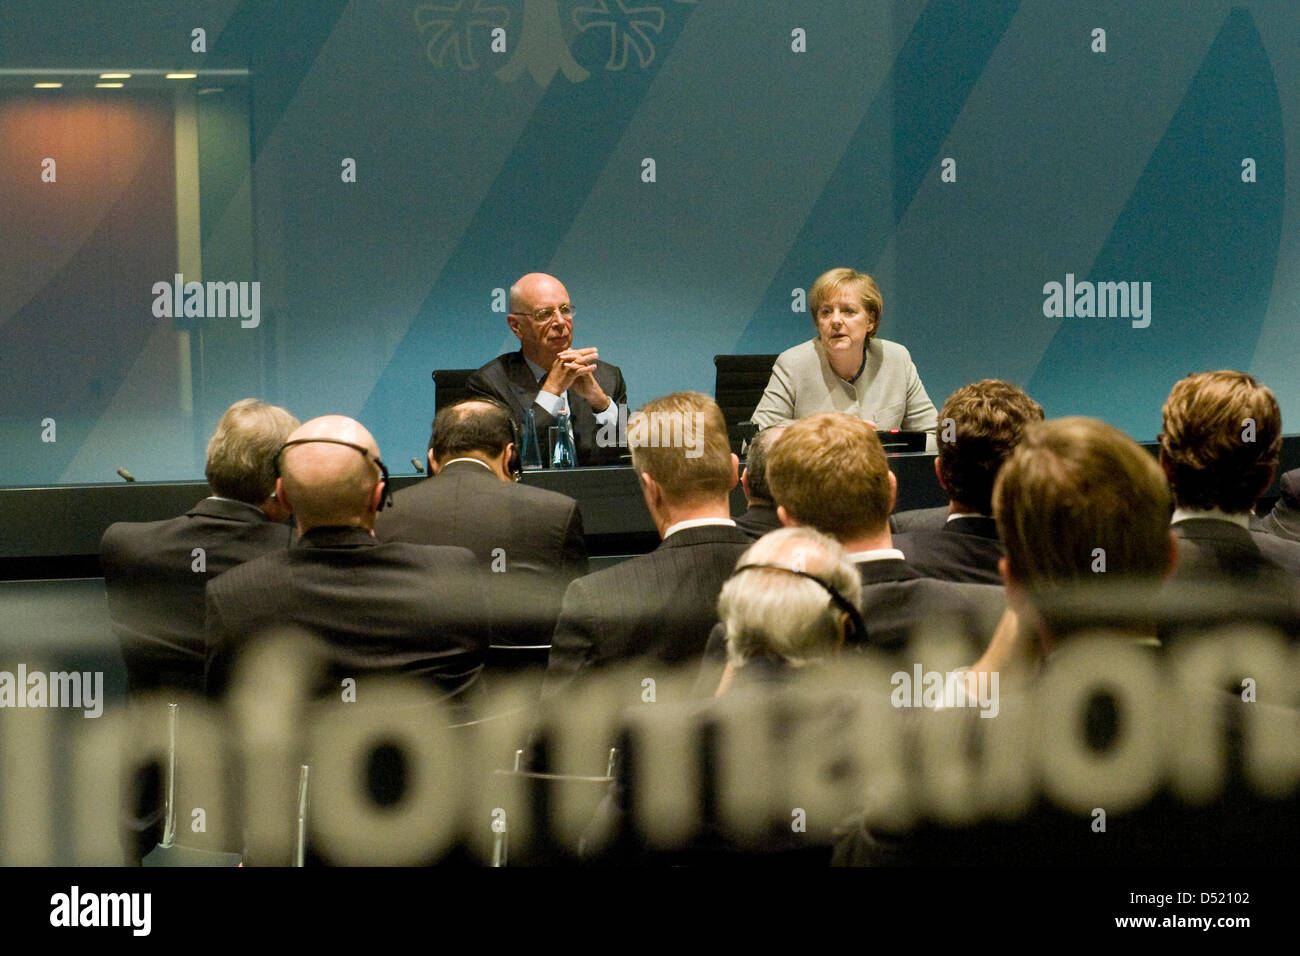 German Chancellor Angela Merkel and President of the World Economic Forum (WEF), KLaus Schwab, meet with members - Stock Image